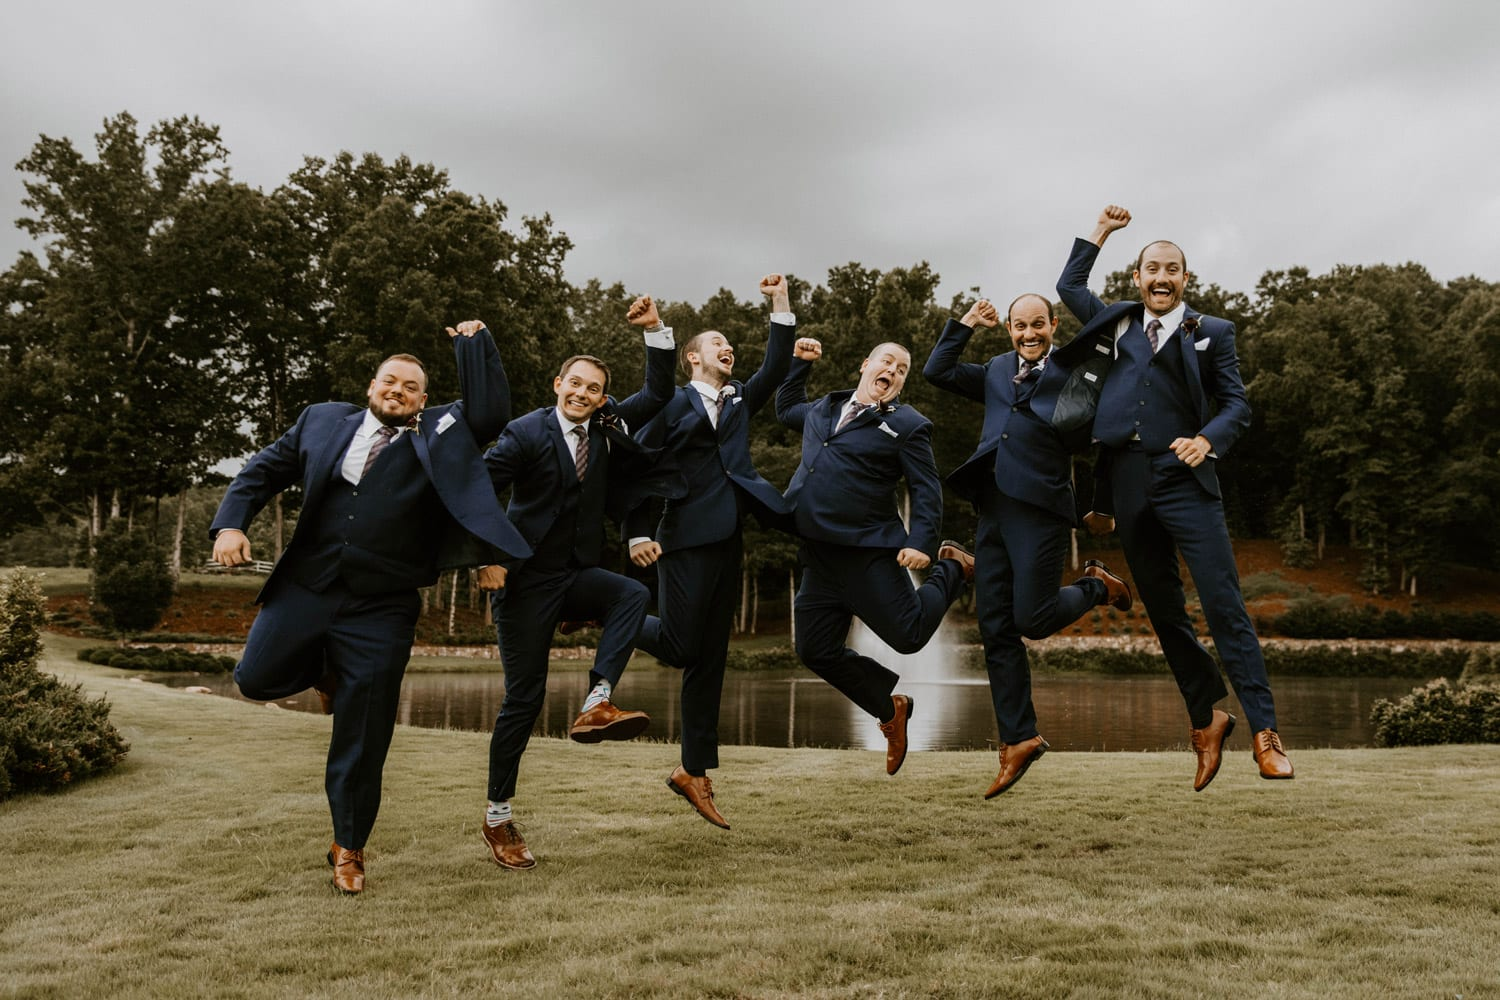 Groom and groomsmen jumping in the air